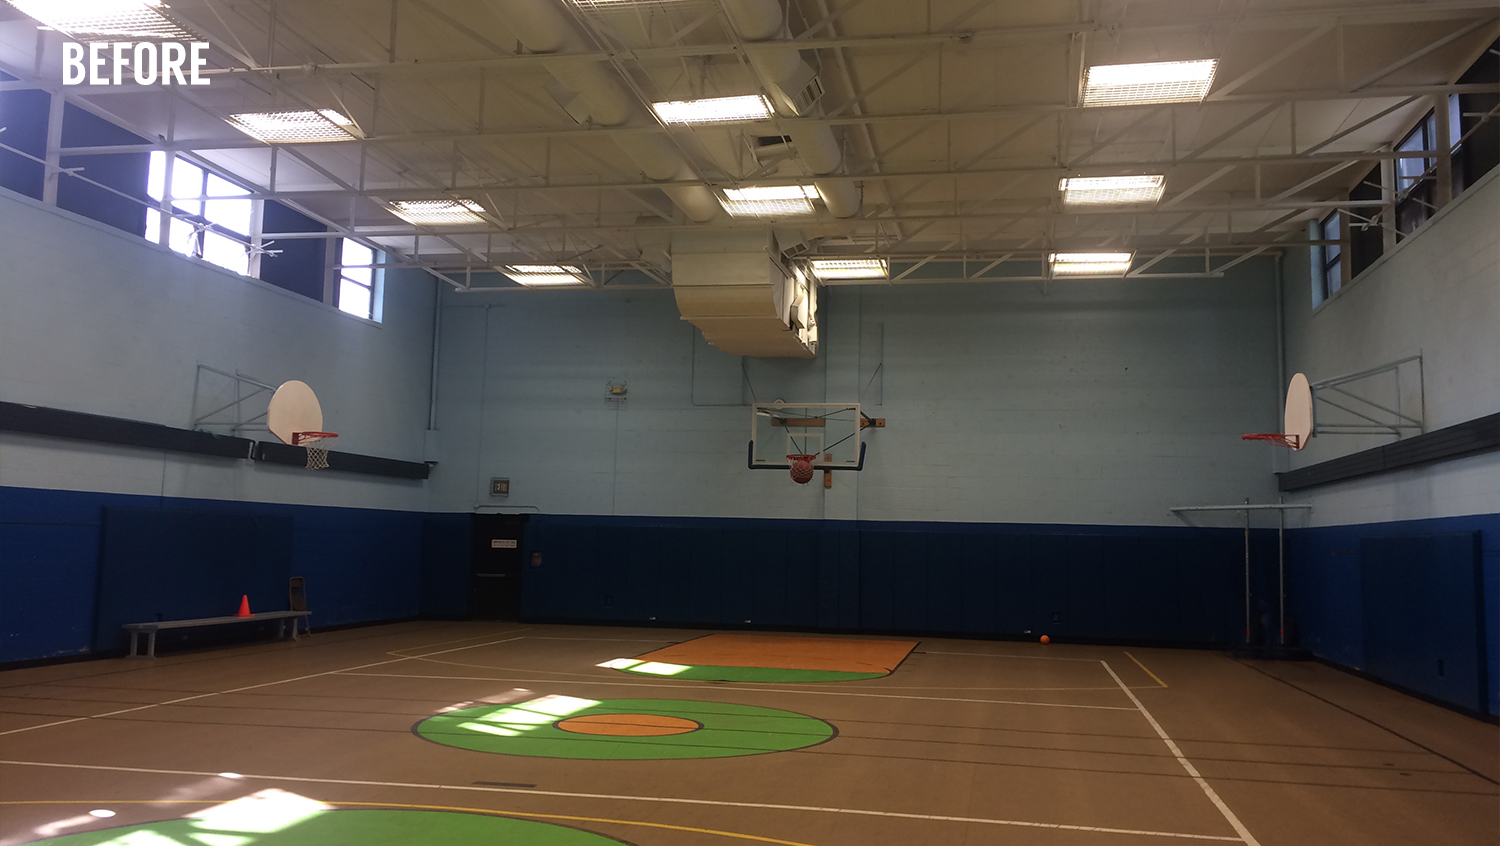 Campbell-St-Gym-before.jpg